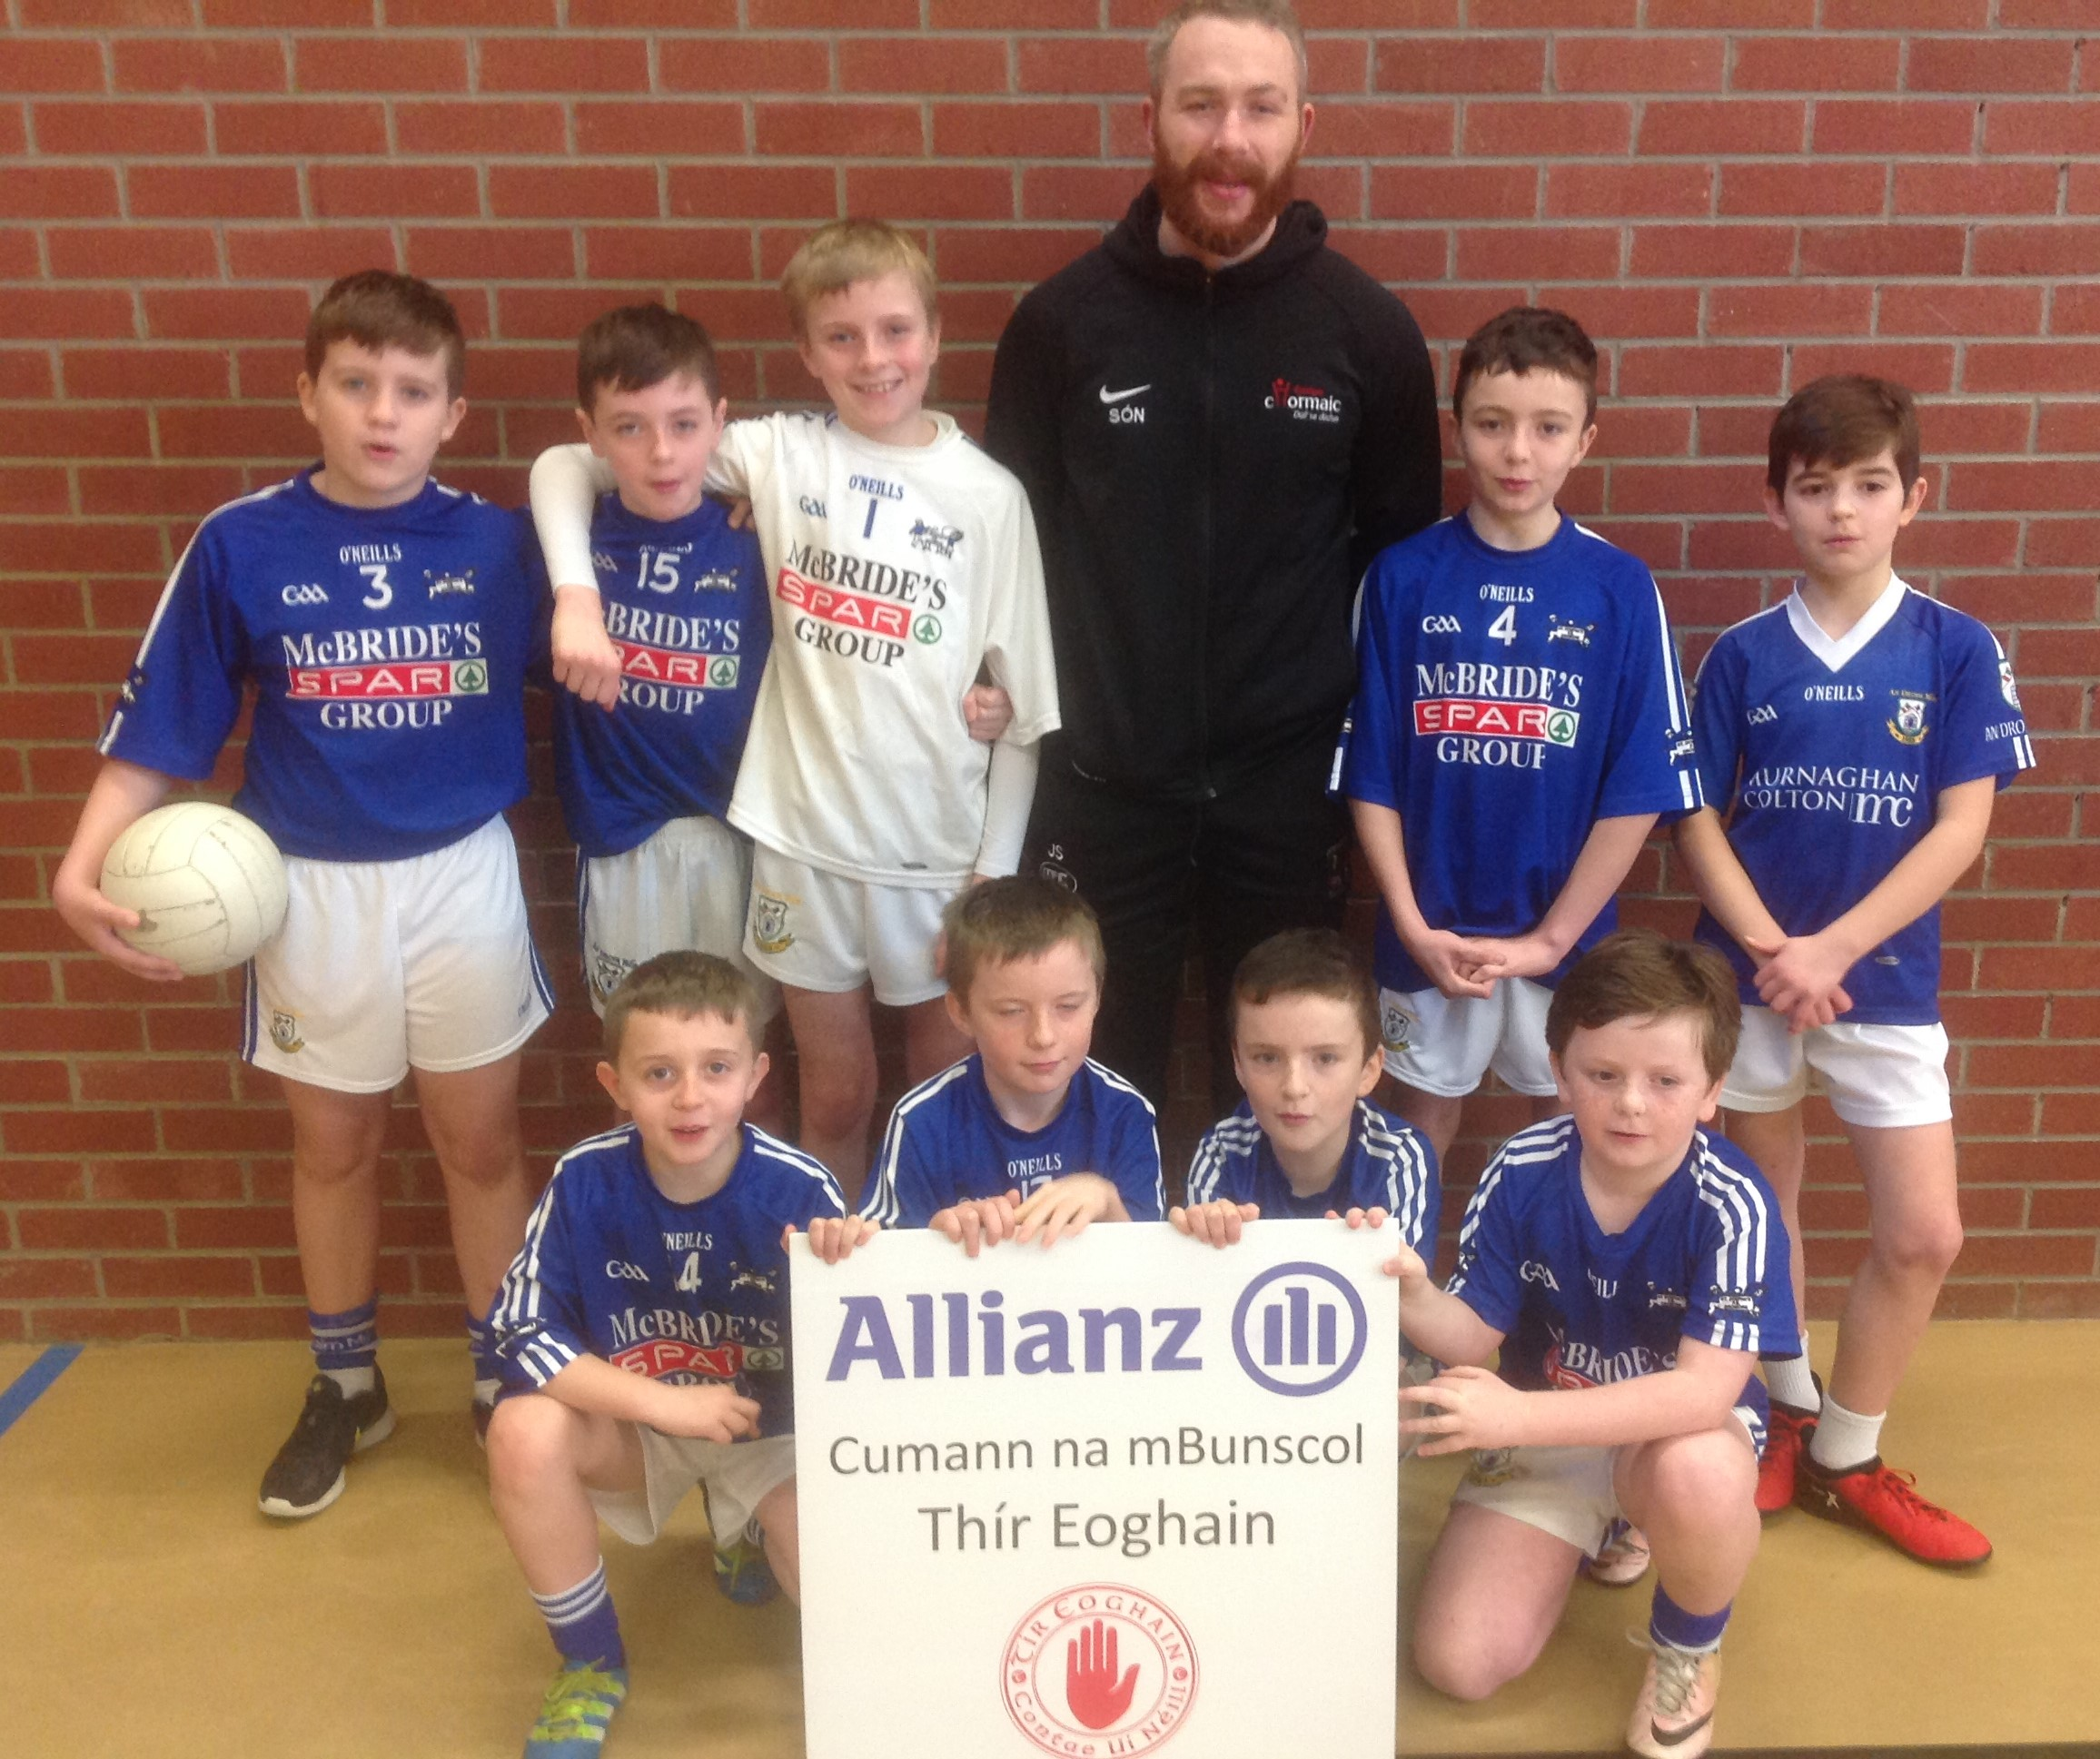 ALLIANZ Cumann na mBunscol – BOYS' INDOOR FOOTBALL HEAT 4: OMAGH